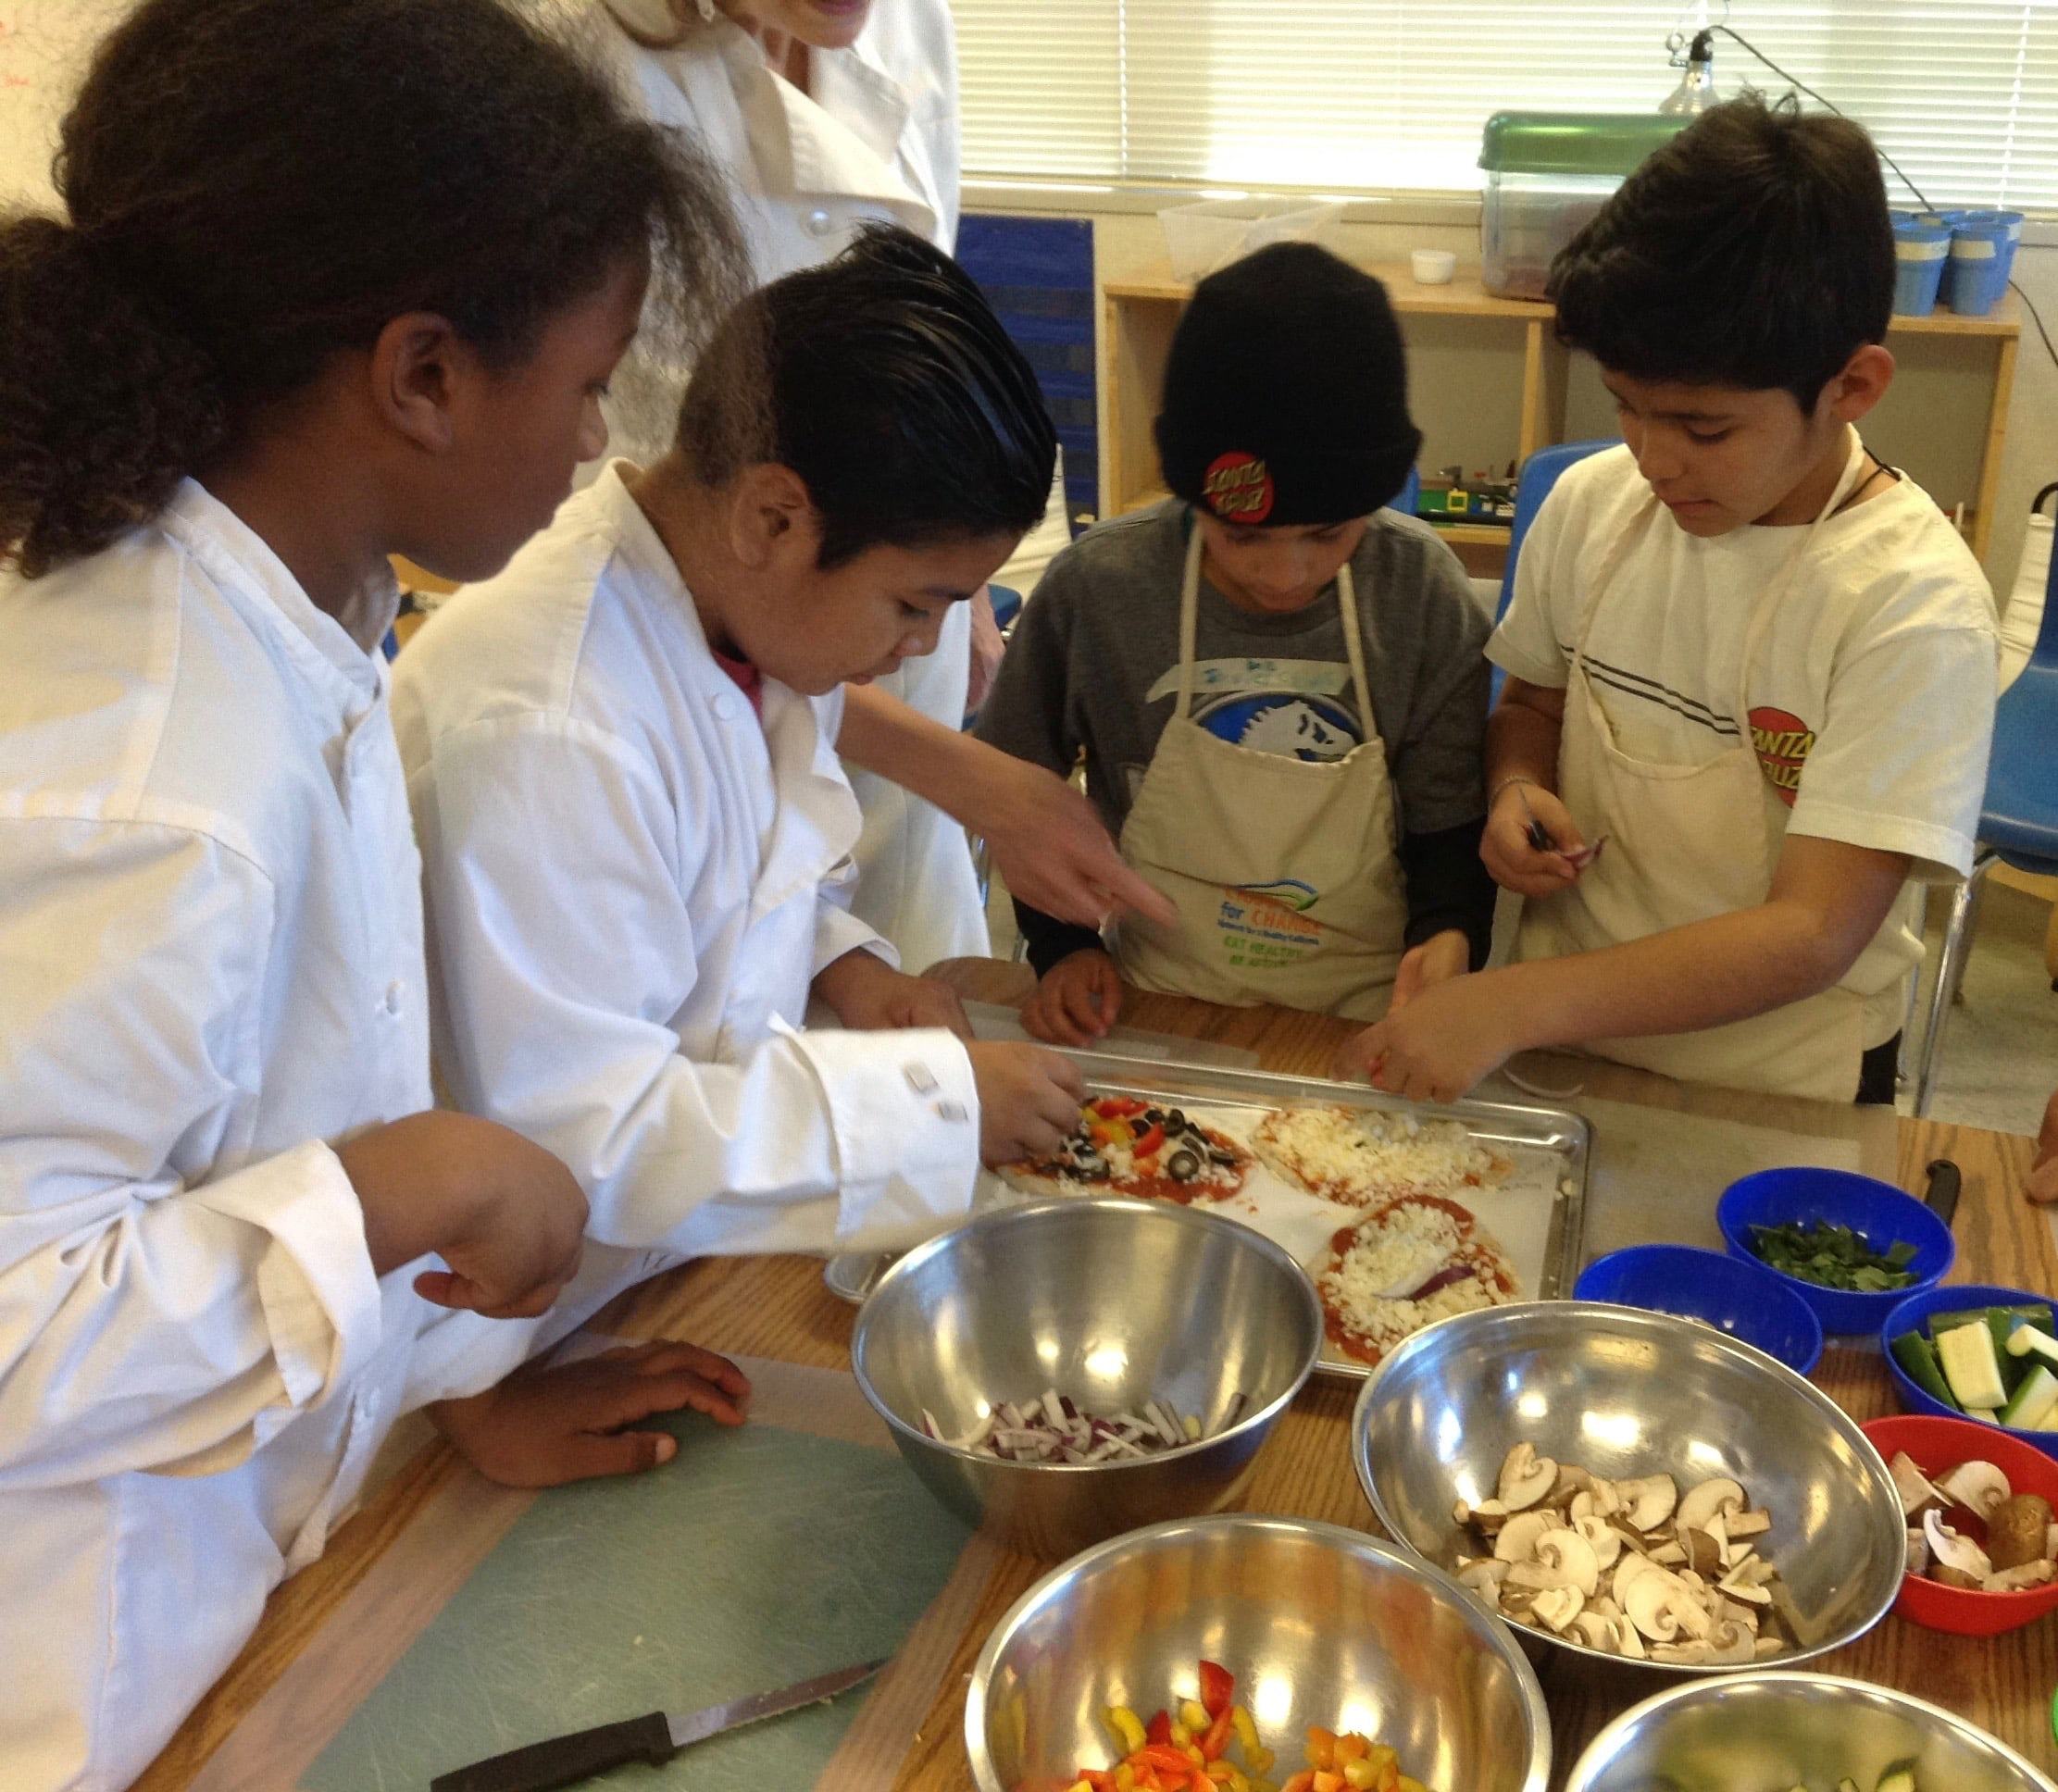 4 students in aprons cooking in a nutrition class